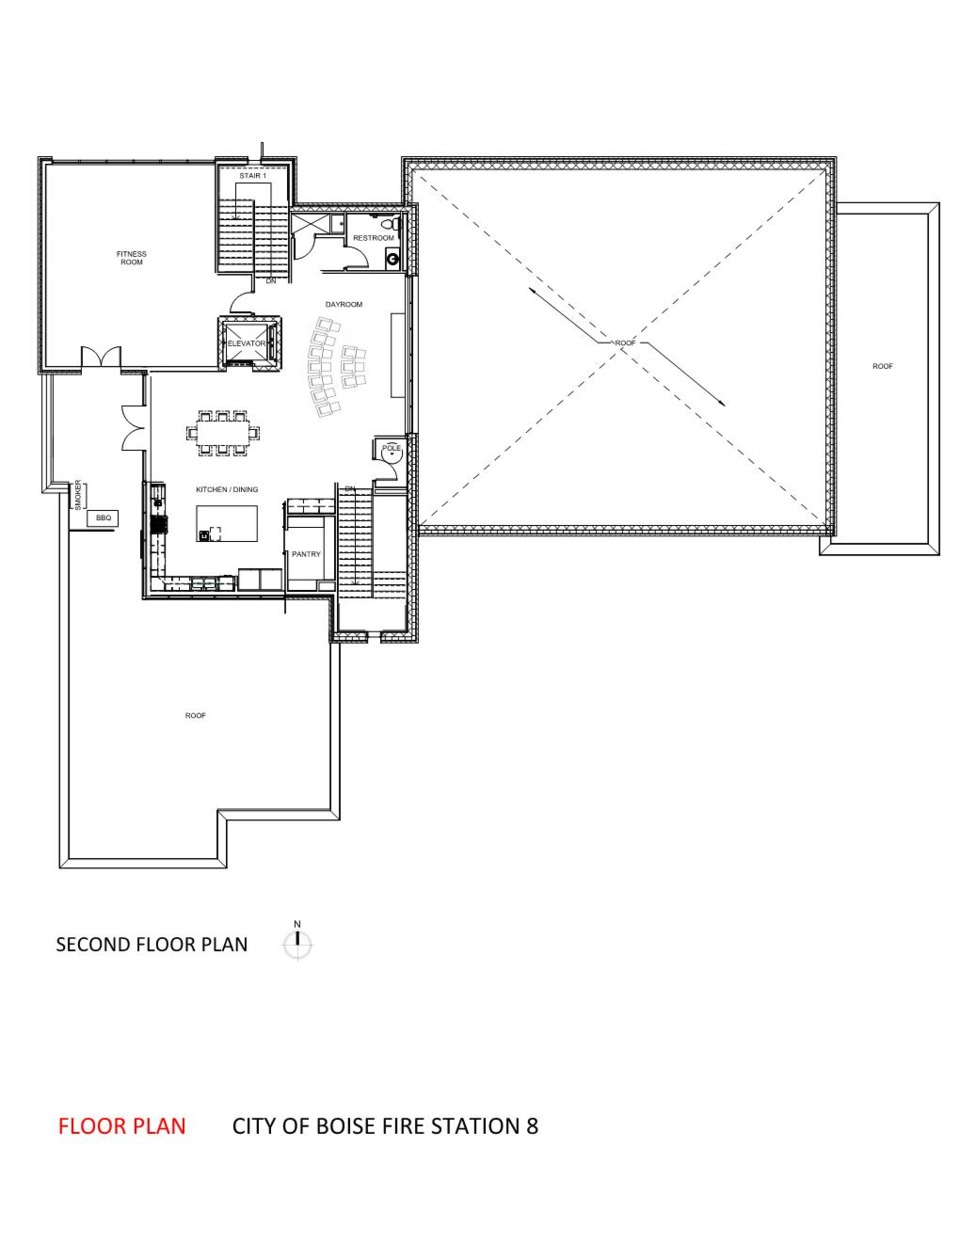 Fire Station Designs - Boise Fire Station 8 - Firehouse Architects ...